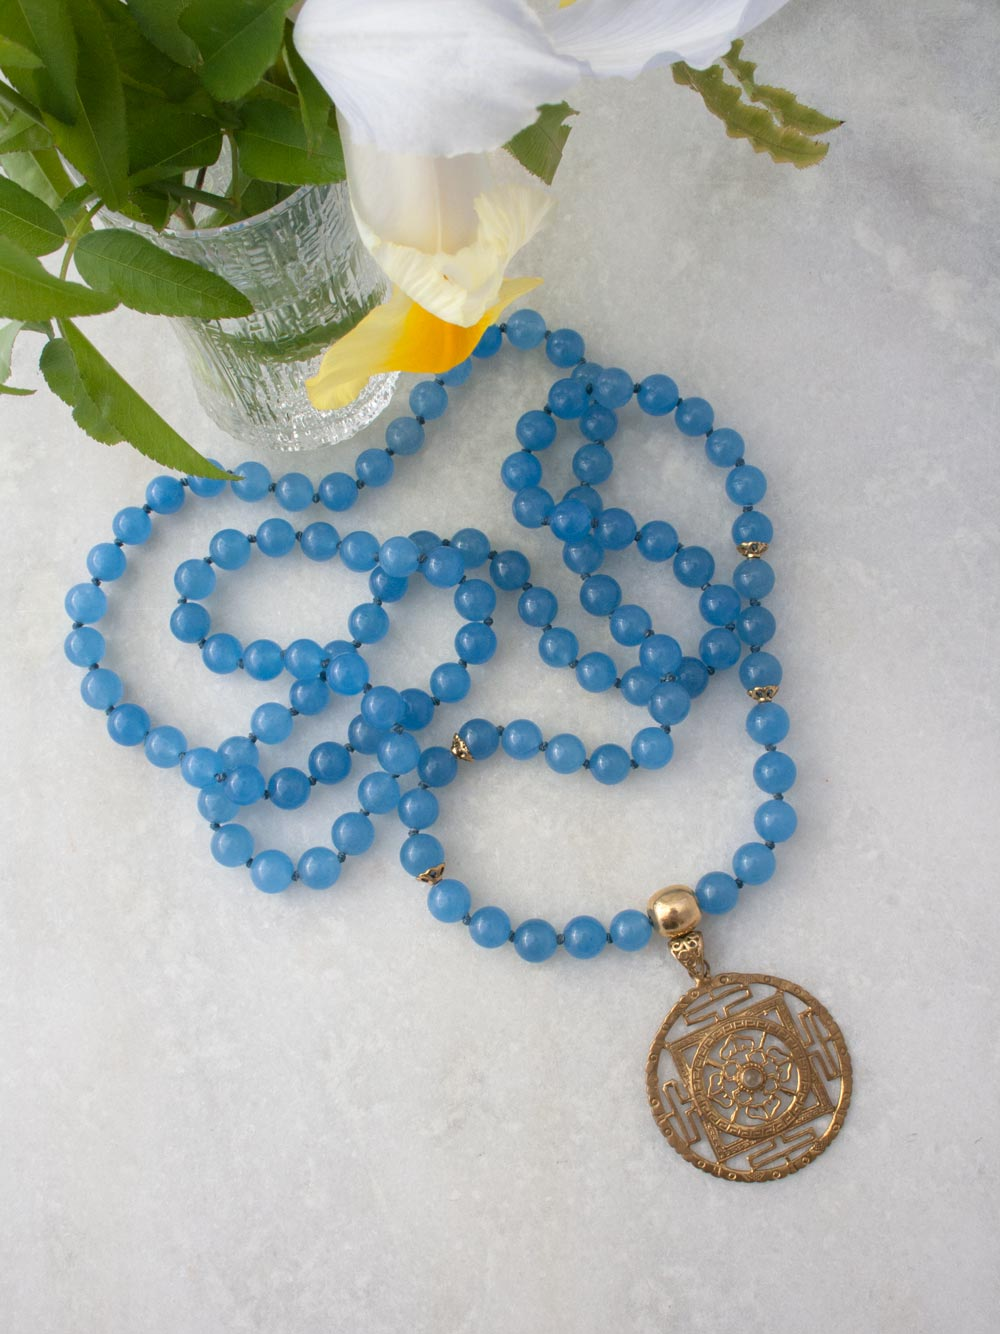 Beyond Infinity Mala, in 10mm Avalon blue aventurine, with brass Guru and Mandala. Full view.